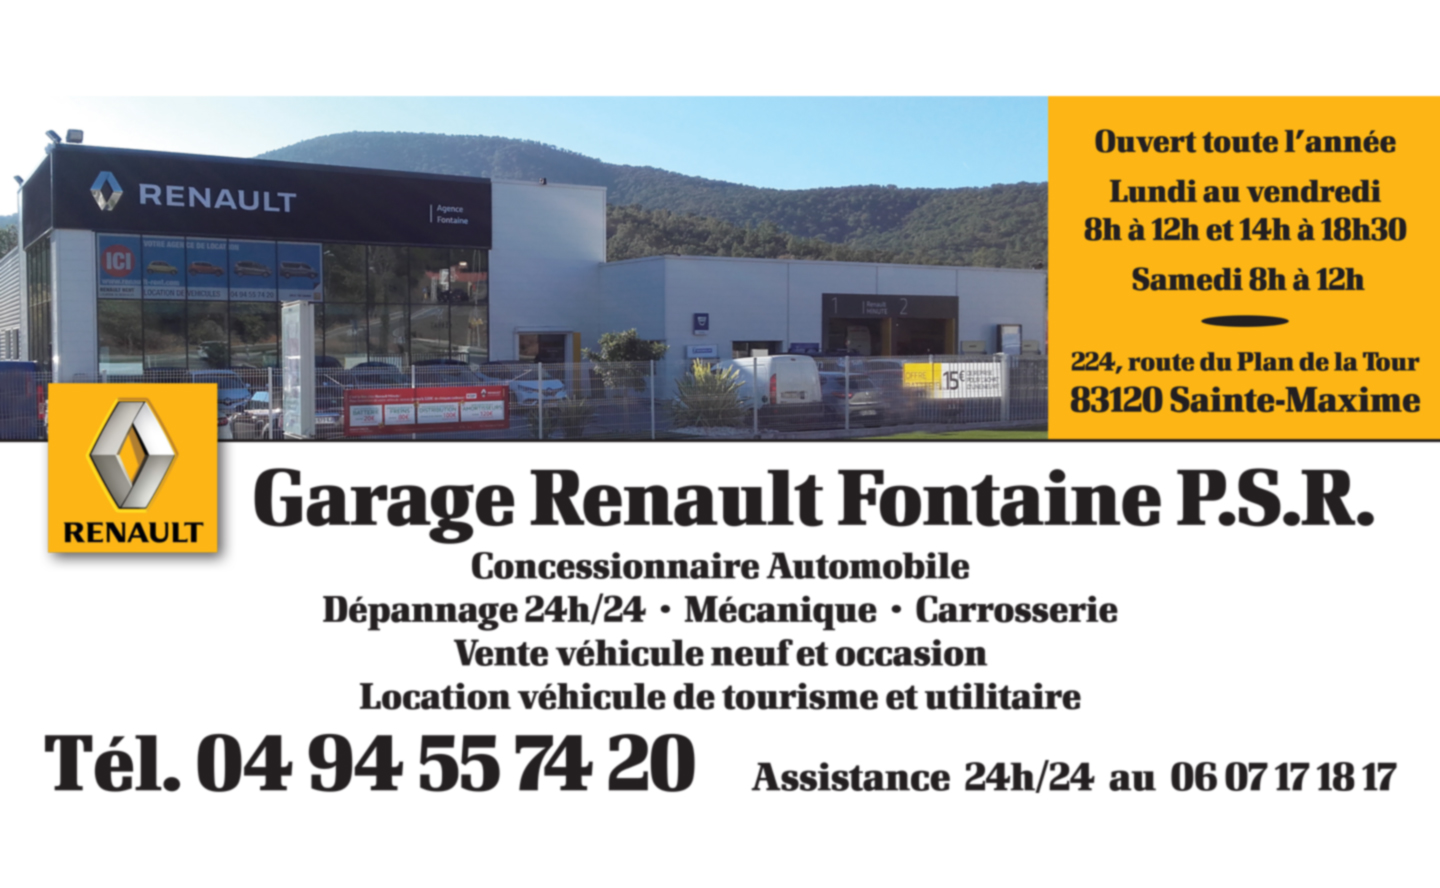 Garage renault fontaine p s r for Garage renault 94